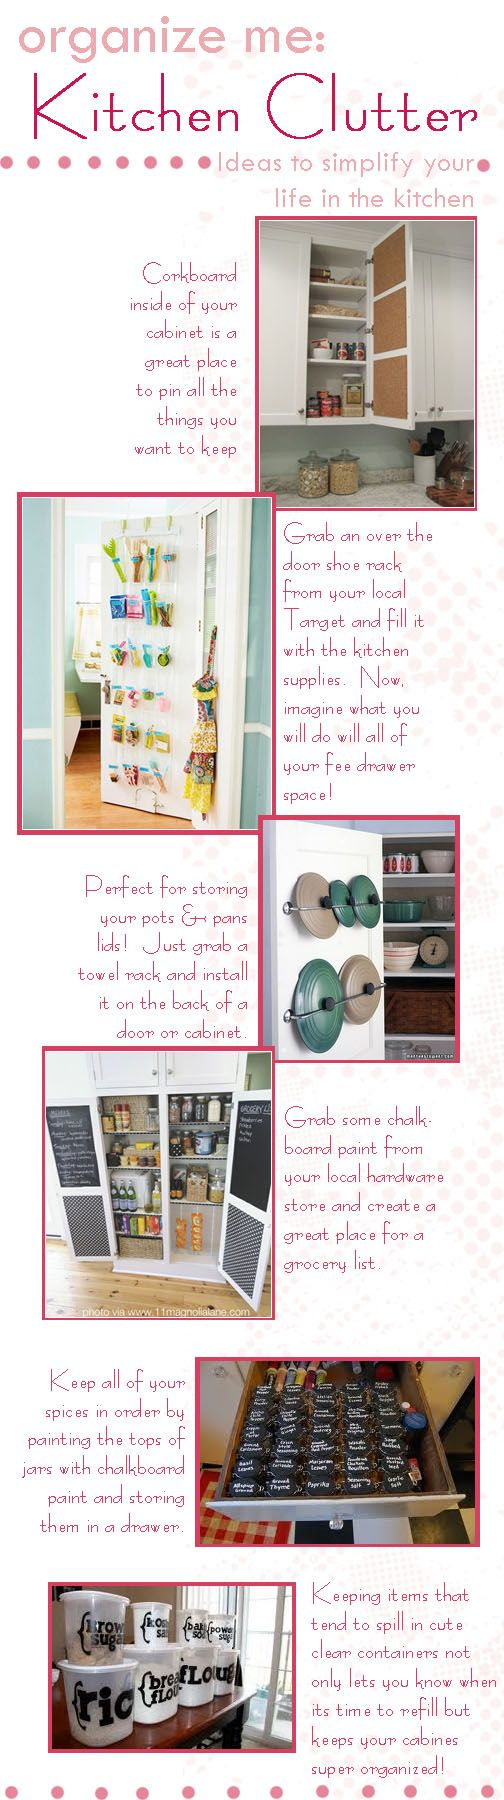 :) ~Awesome ideas! Whenever I get a place of my own I am definitely using the towl rack idea!: Doors Idea, The Doors, Organizing Ideas, Kitchen Organization, Kitchen Clutter, Organize Kitchen, De Clutter, Chalkboard, Kitchen Ideas